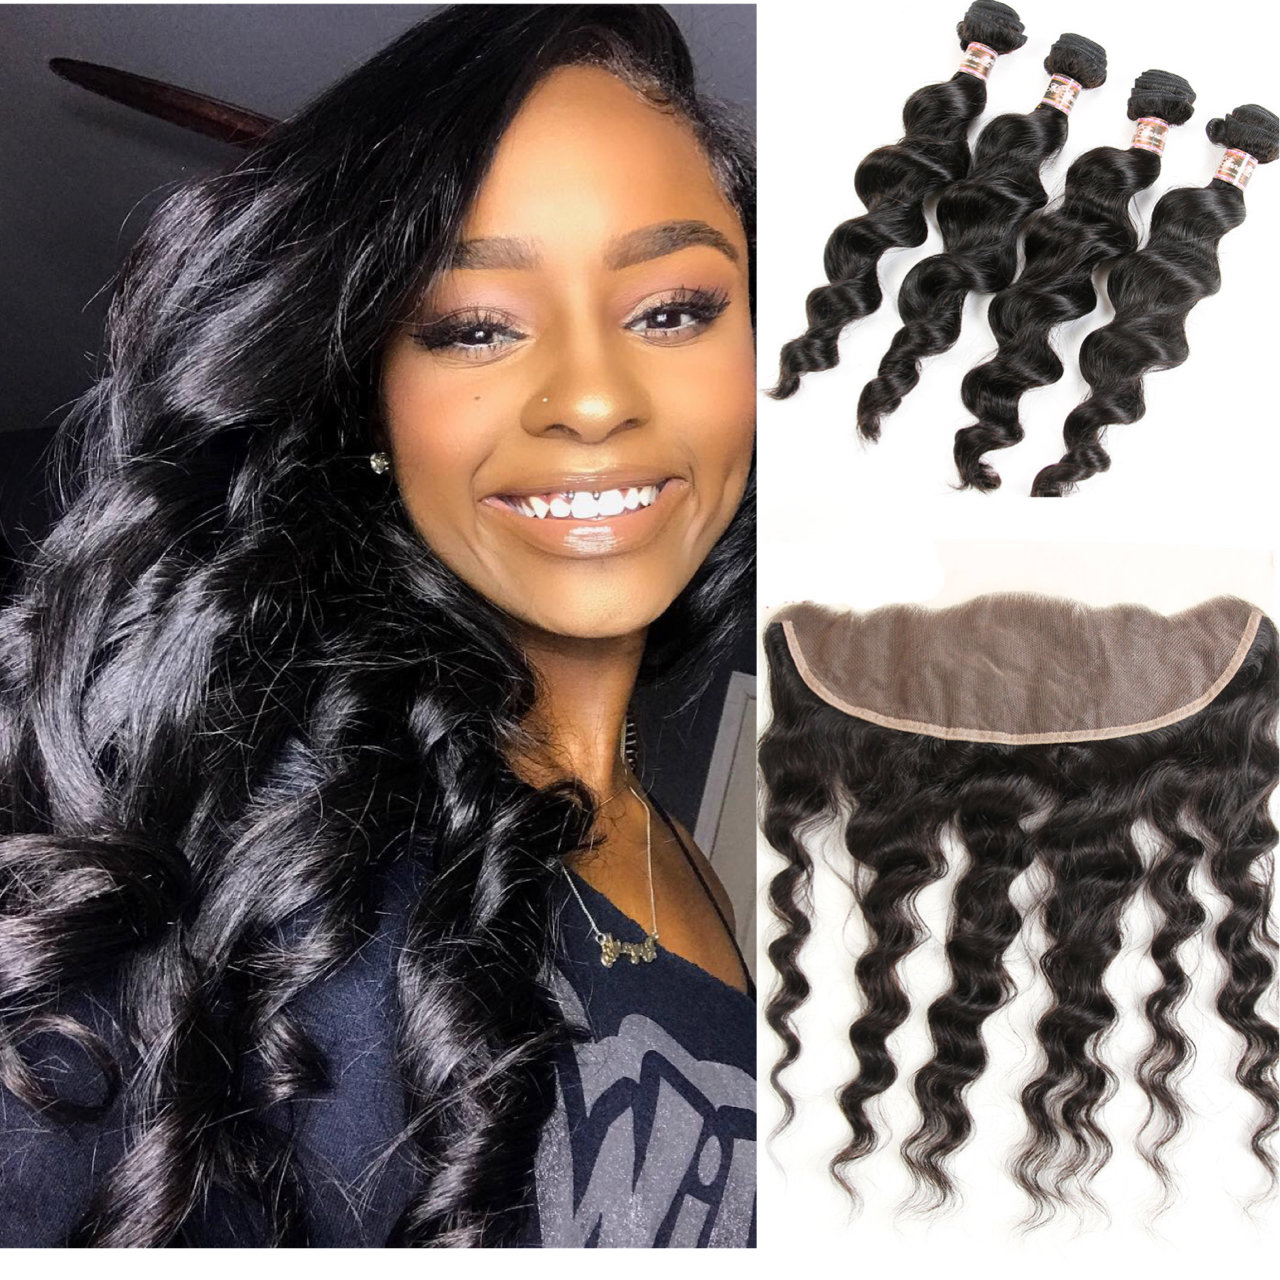 5PCS/LOT Virgin Hair Loose Body Wave with lace Frontal Ear to Ear Lace Frontal 13x4 Frontal With Bundles Deals